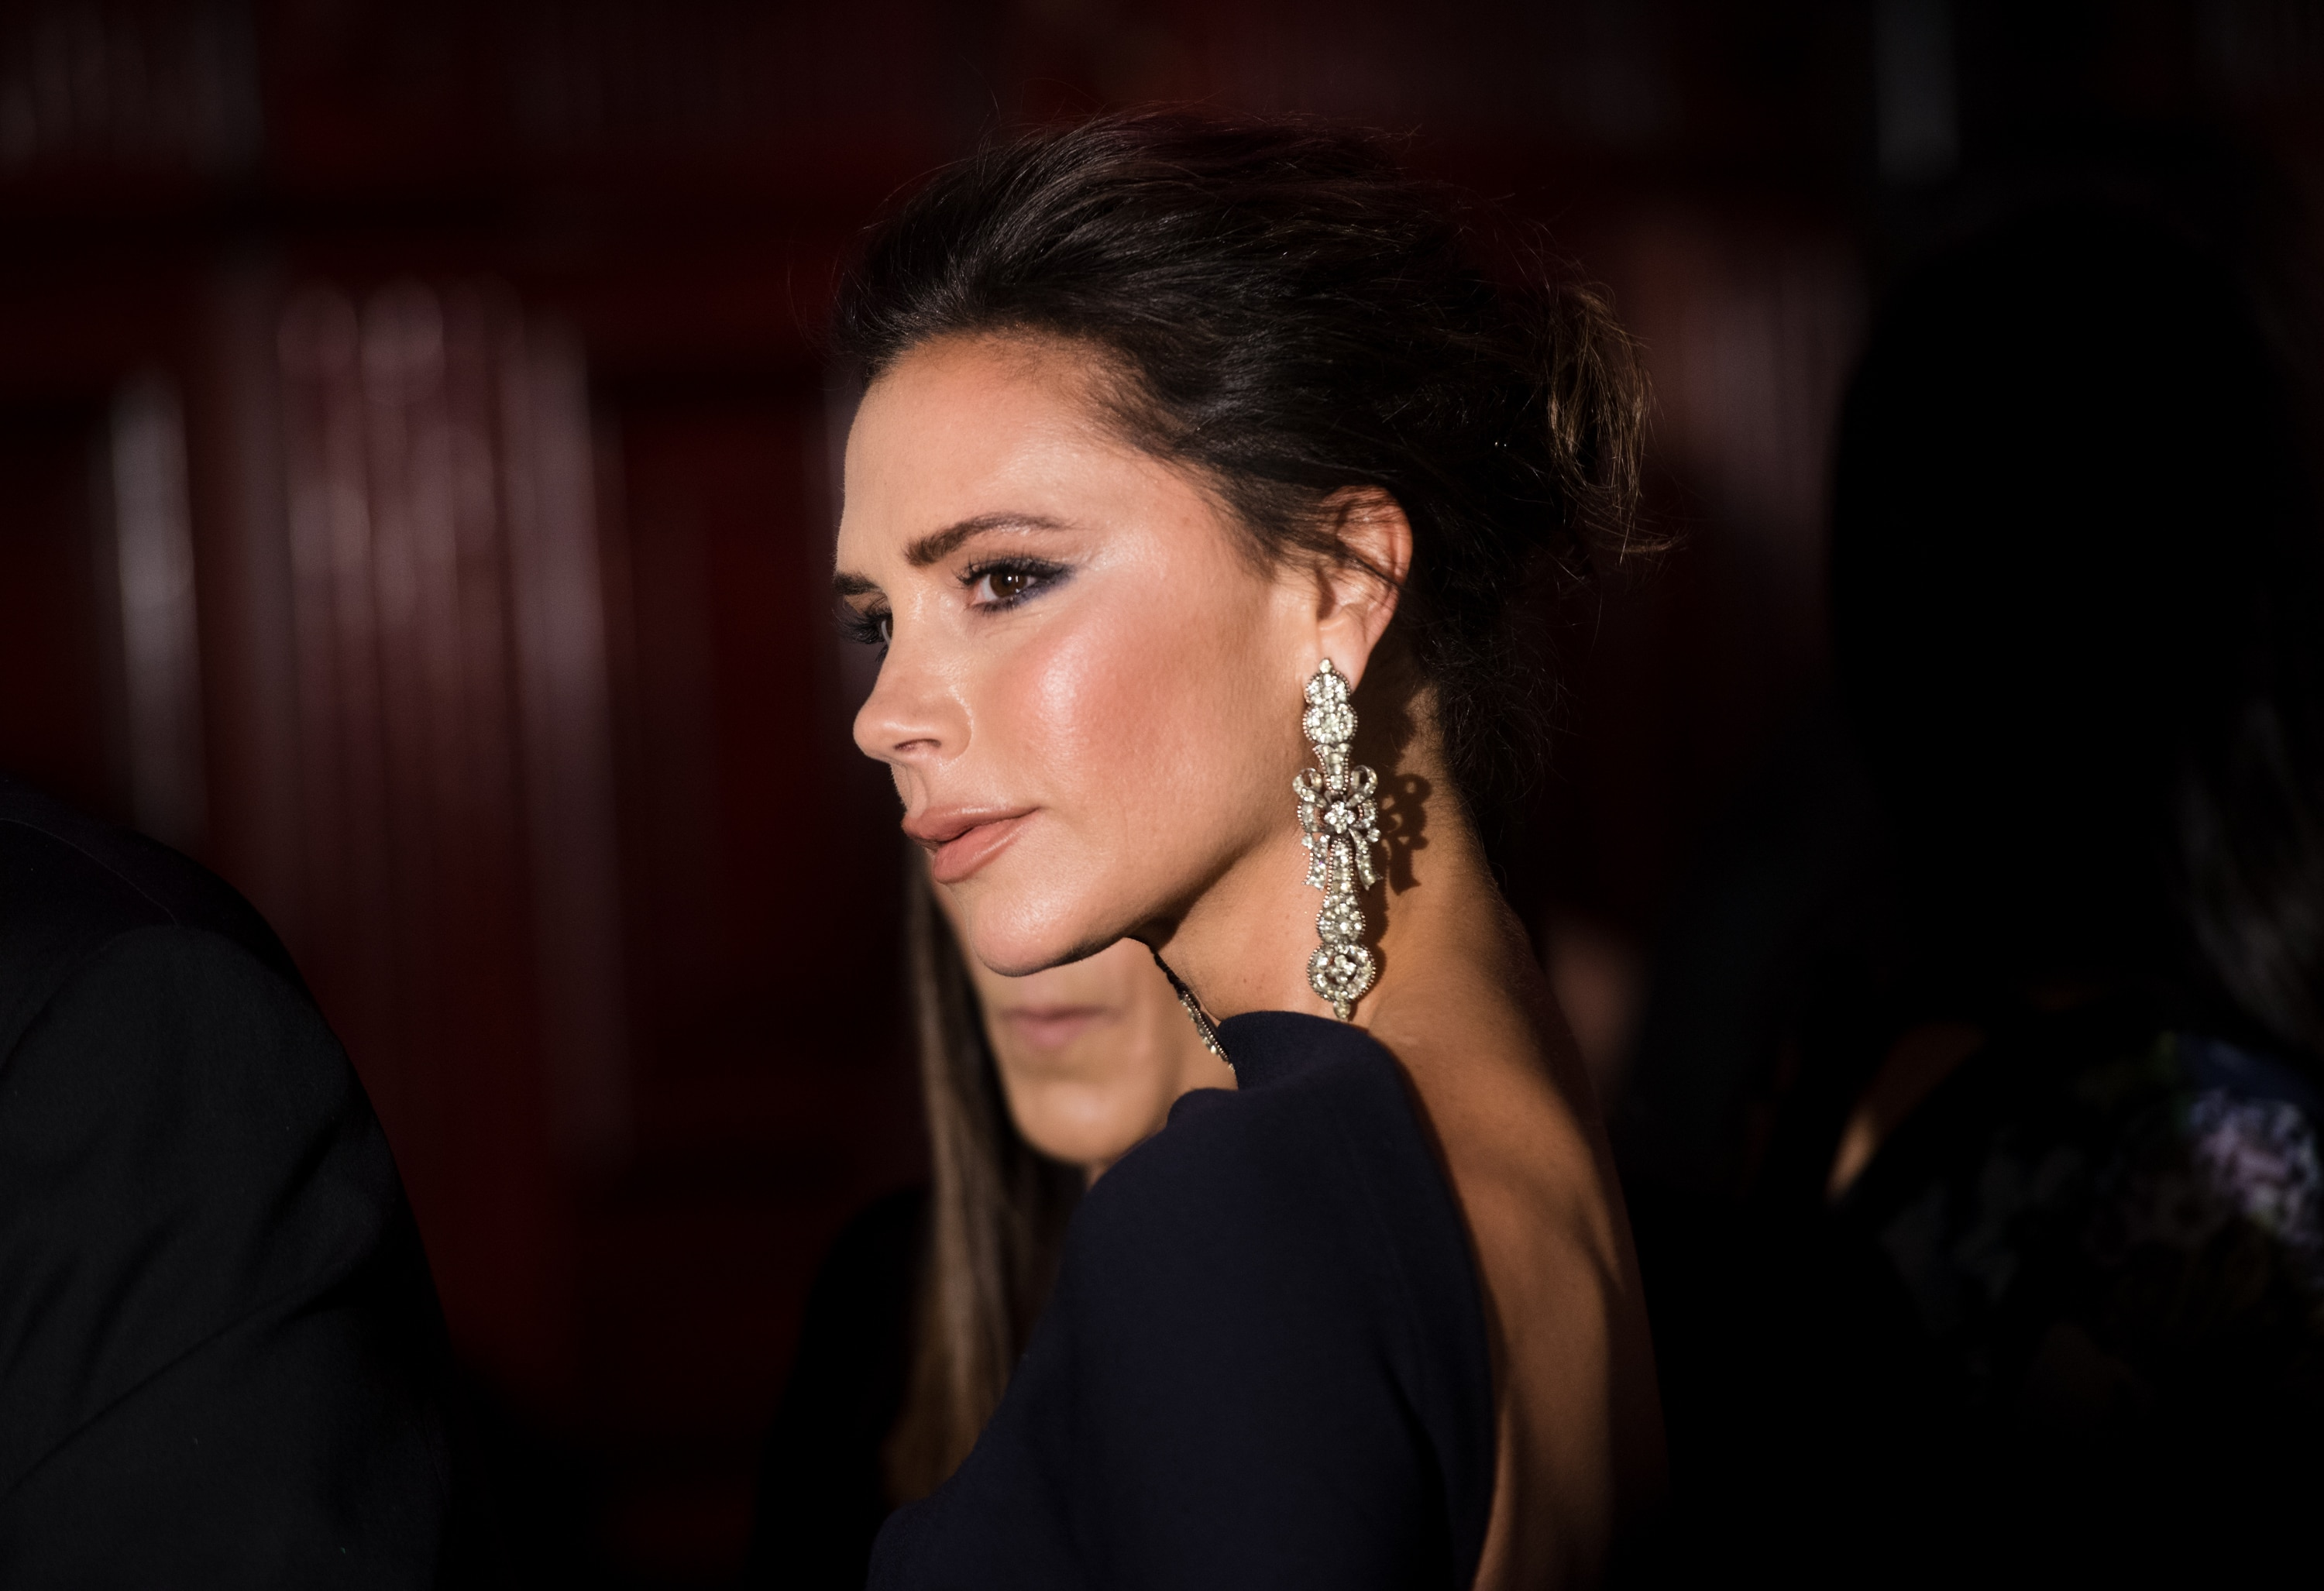 5 Daily Habits to Steal from Victoria Beckham, Including Doing Exactly What Drives Her Passion